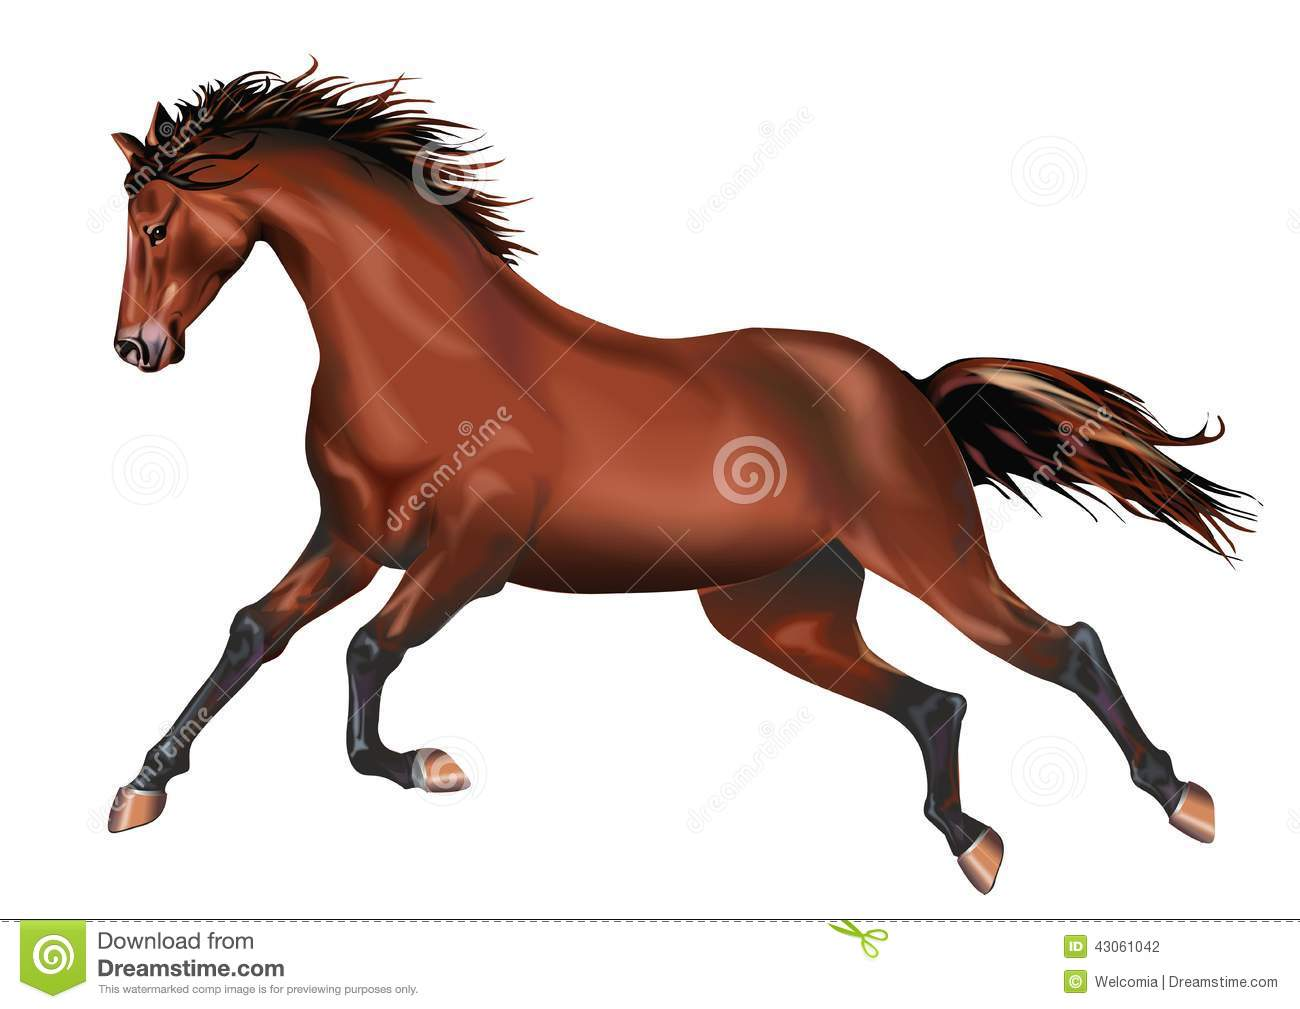 Brown Galloping Wild Horse Illustration Isolated on White Background.